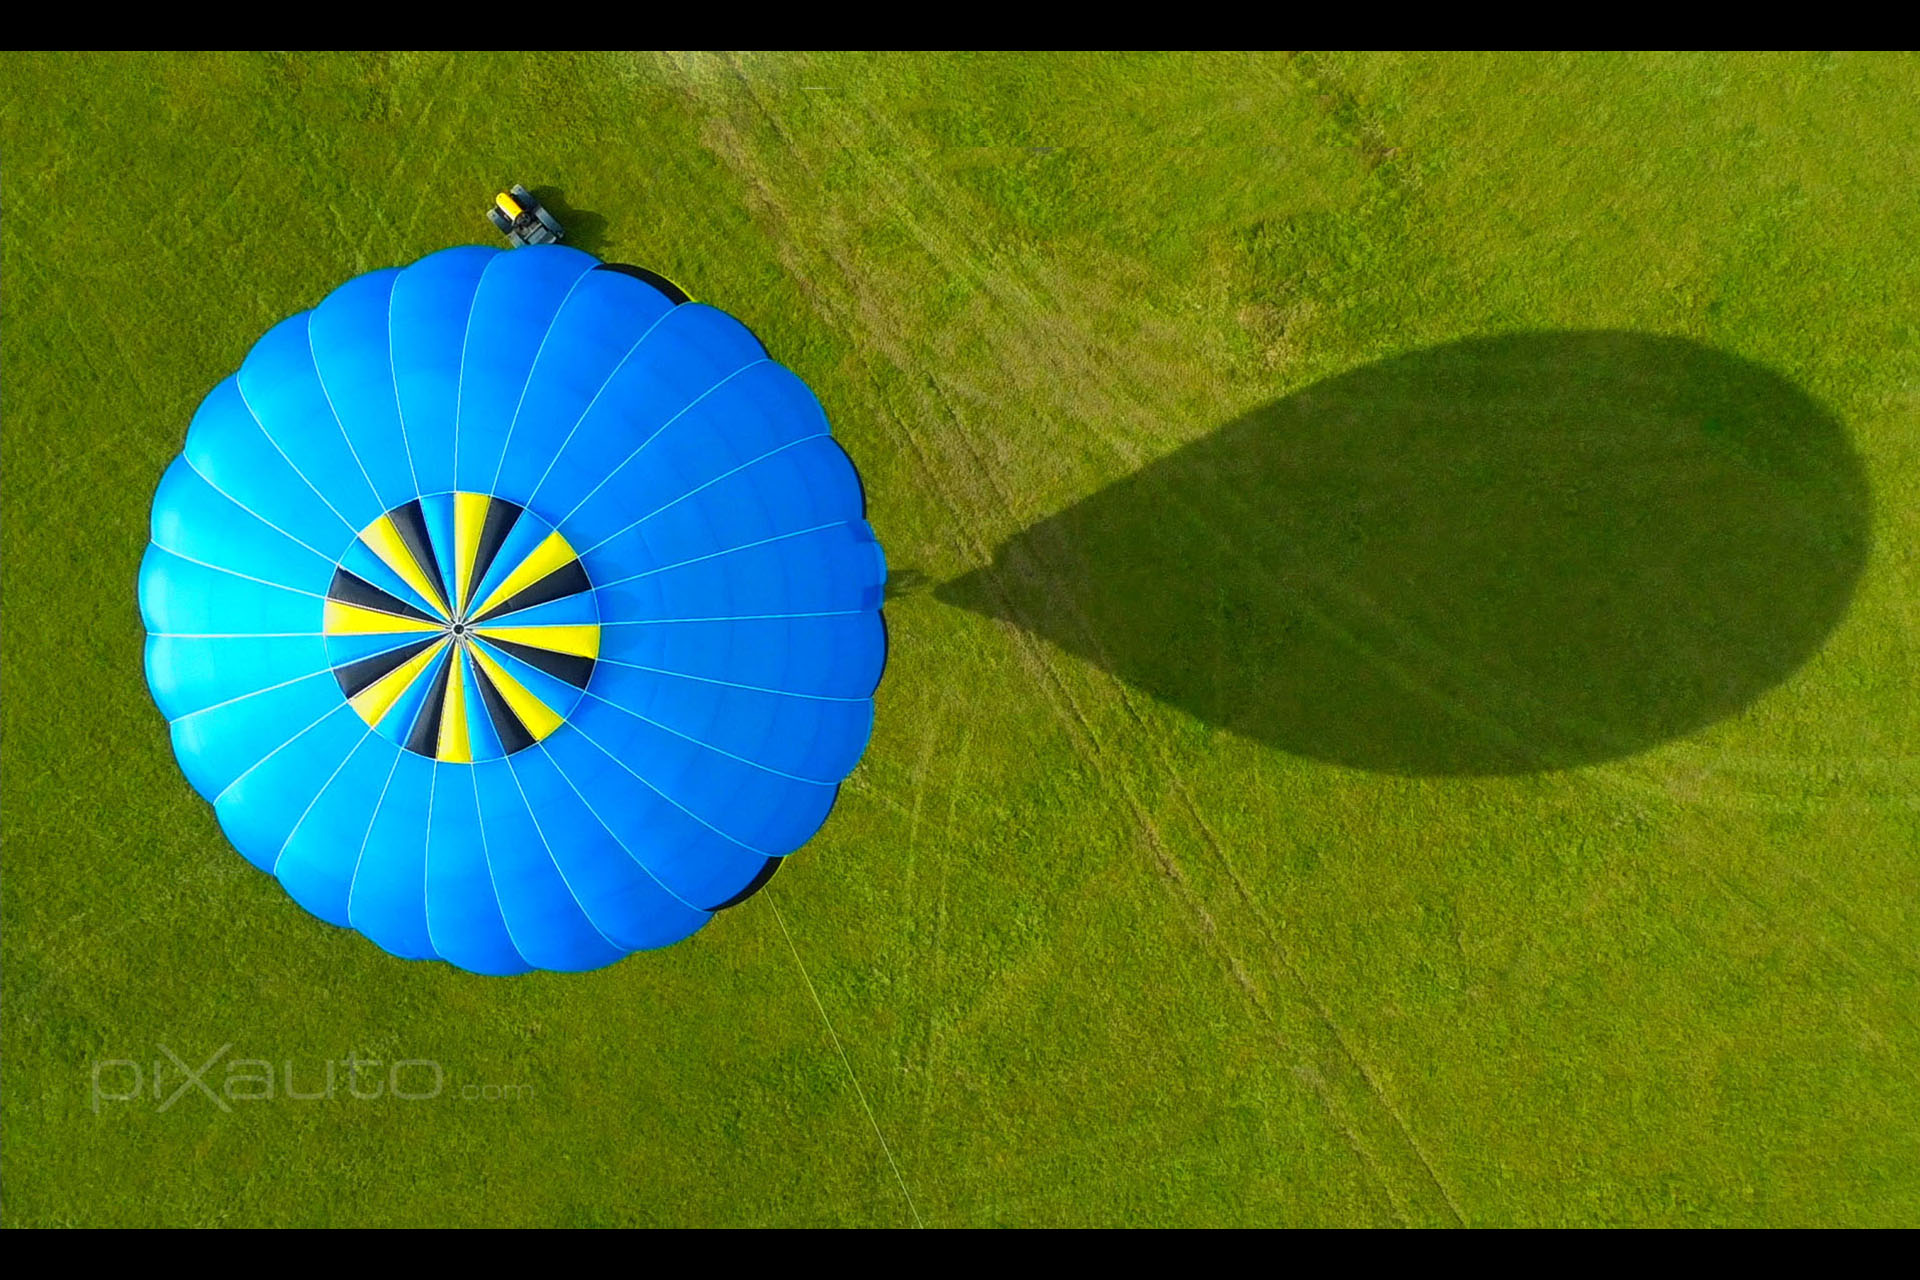 Deemster Hot air balloon aerial image